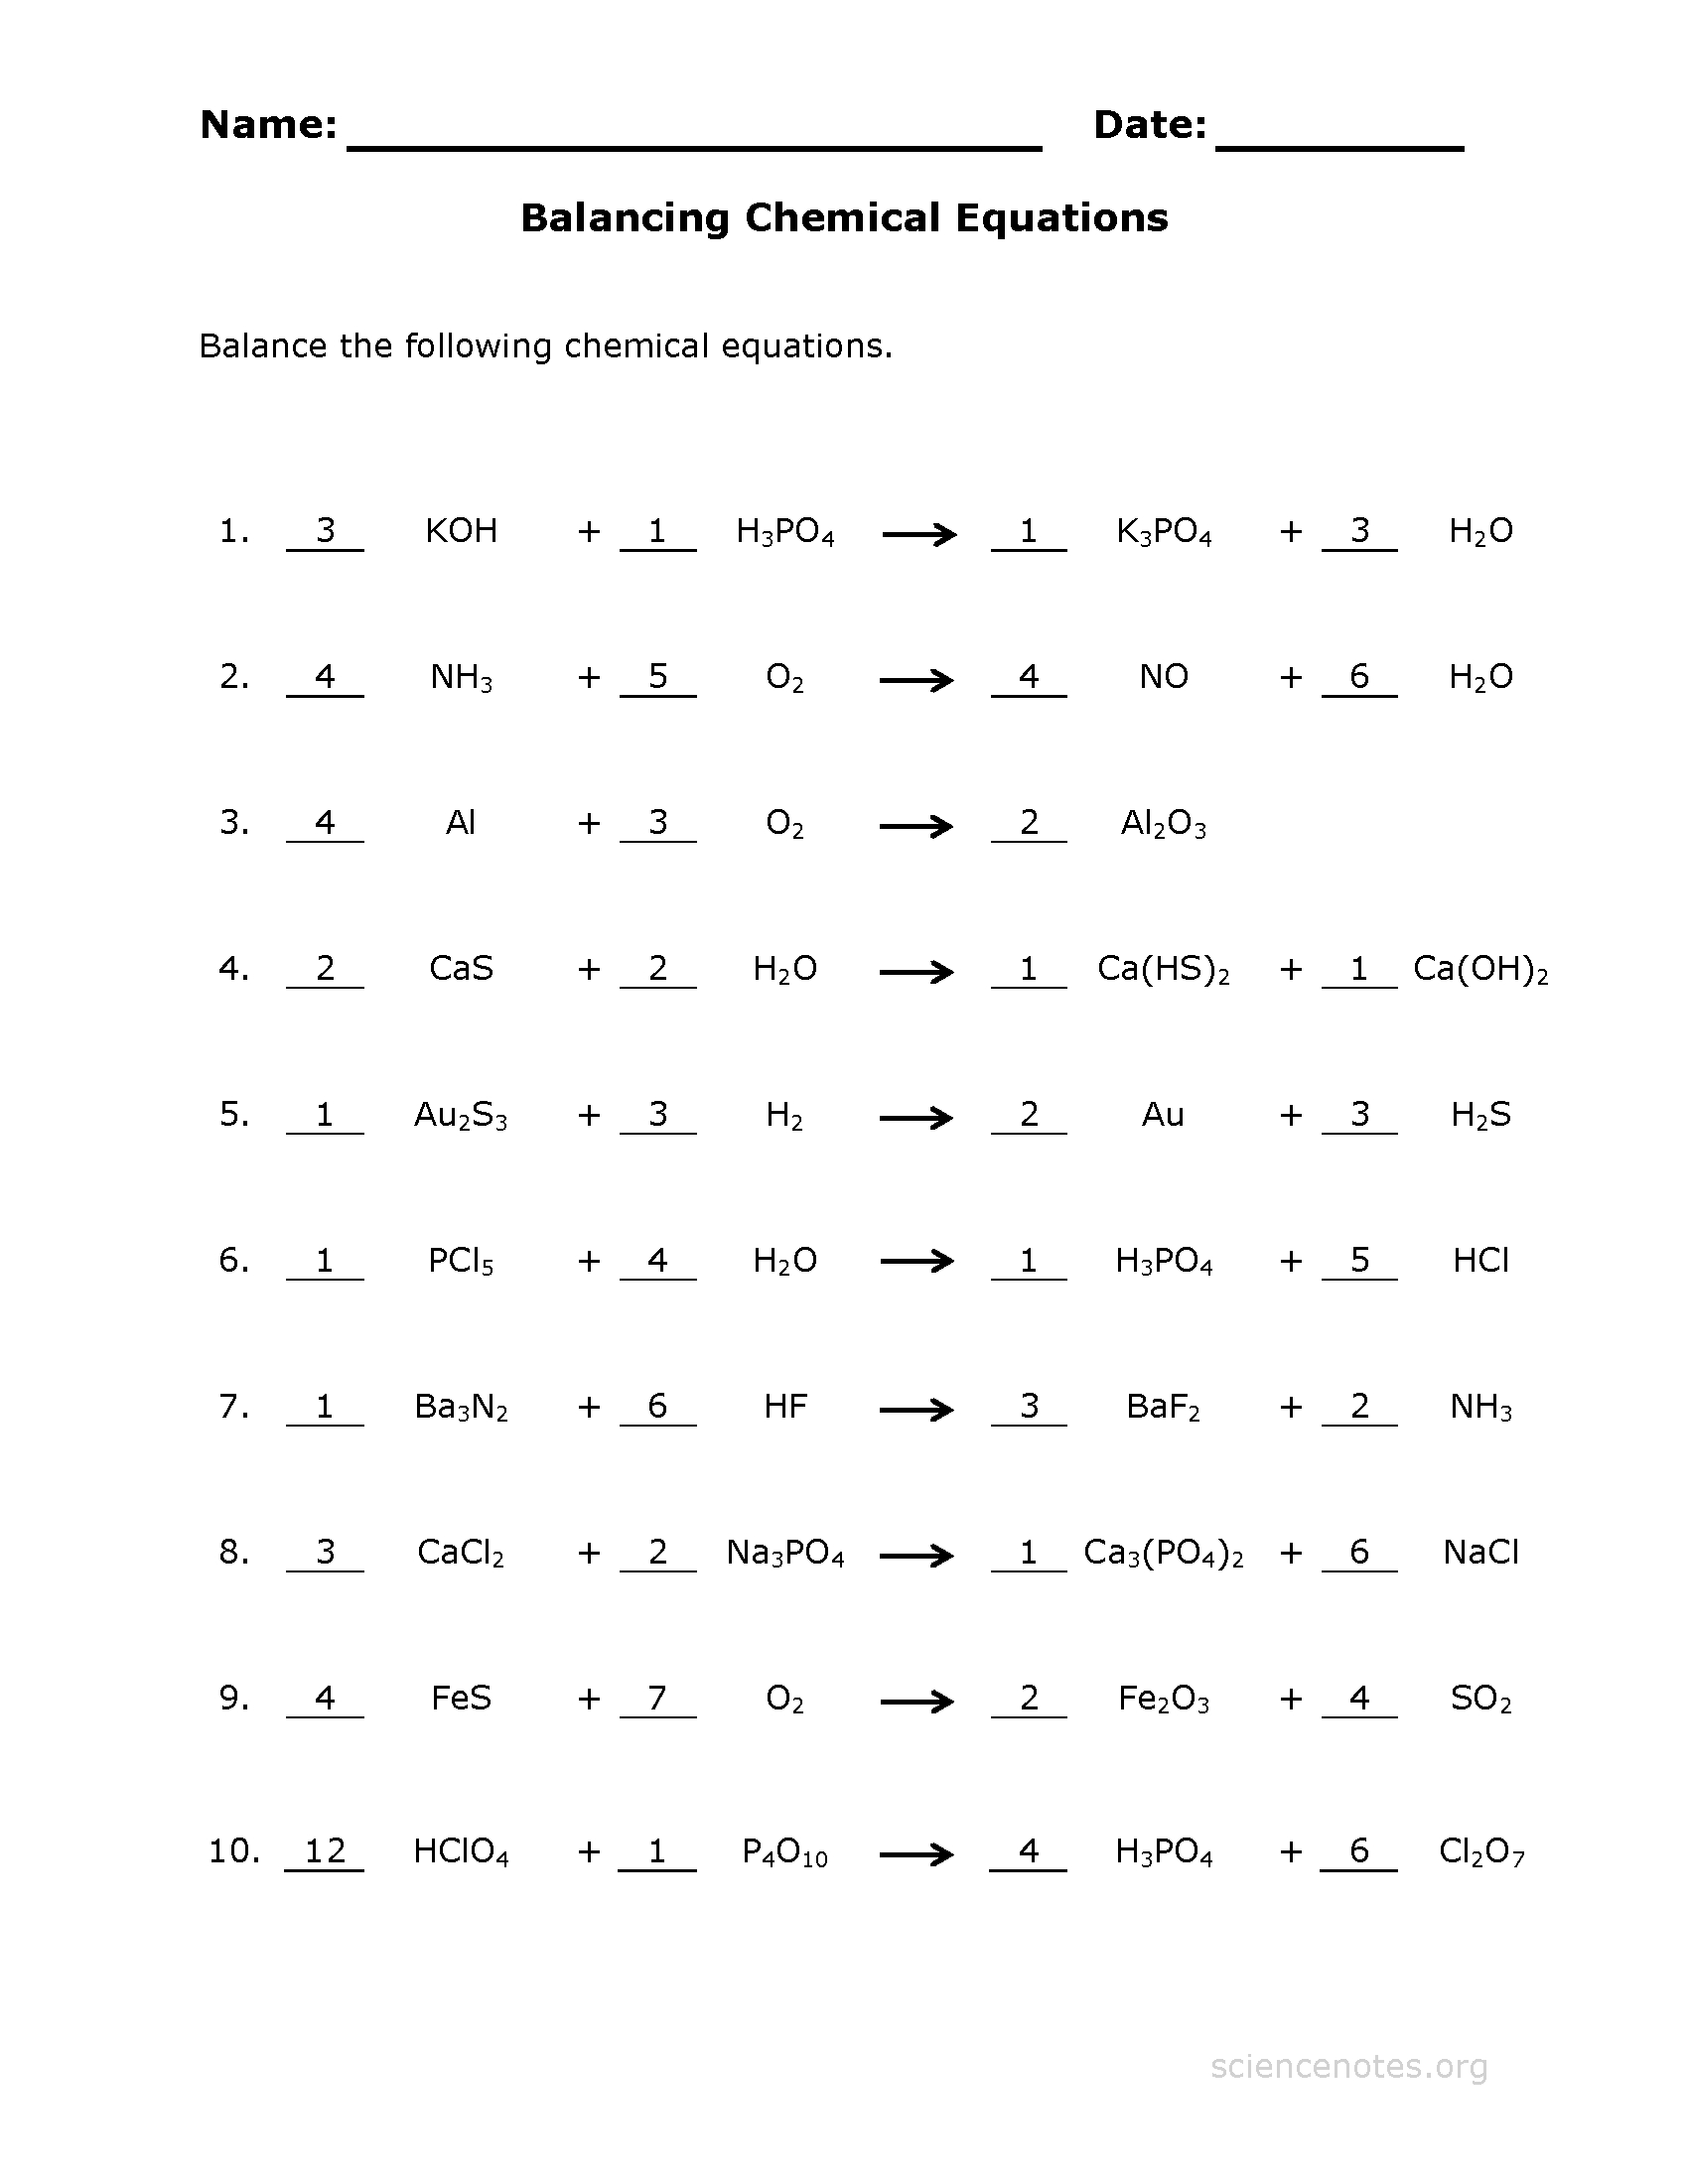 Balancing Equations Worksheet 1 Answer Key